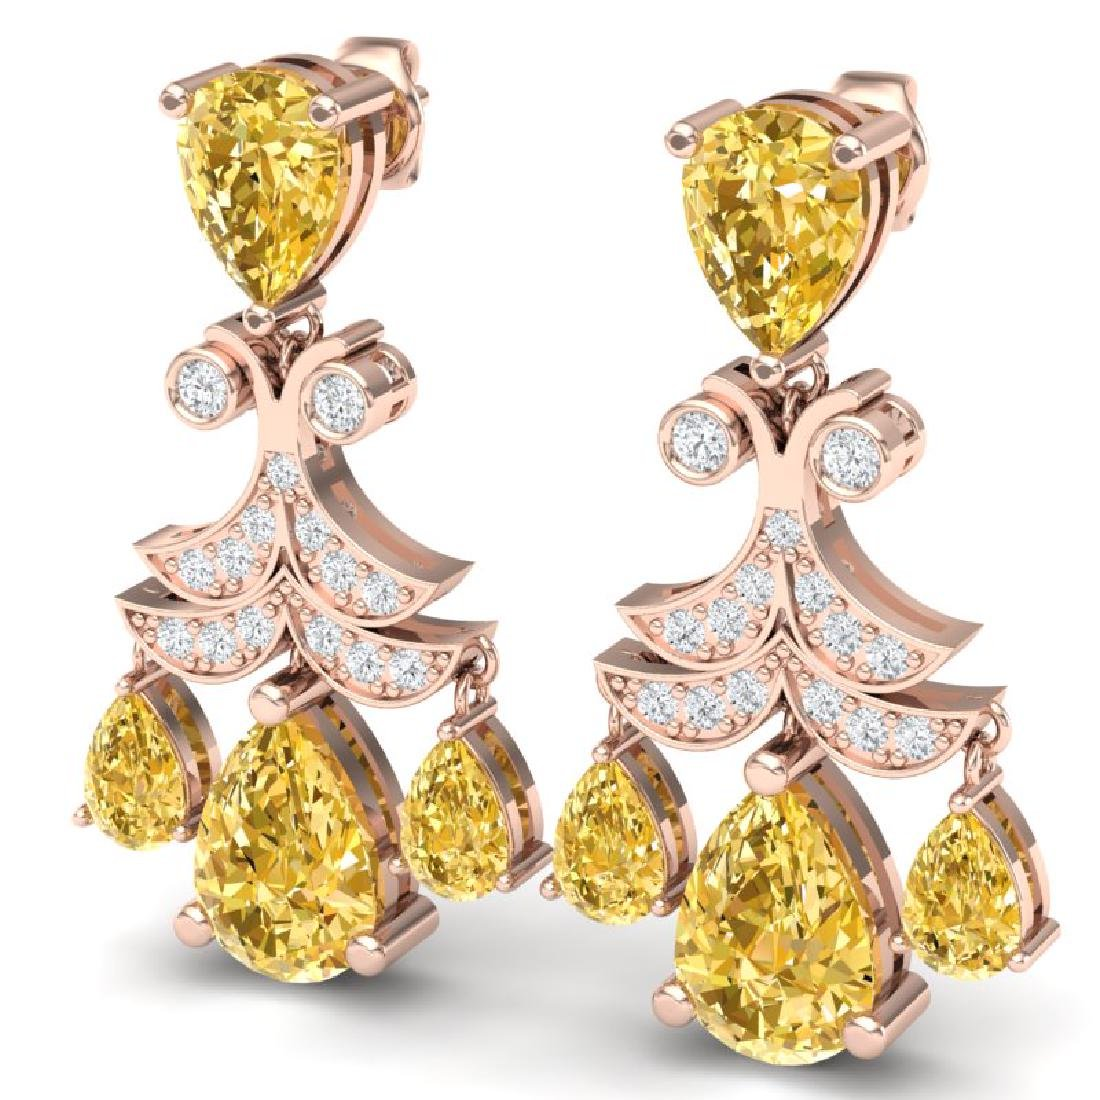 10.41 CTW Royalty Canary Citrine & VS Diamond Earrings - 2